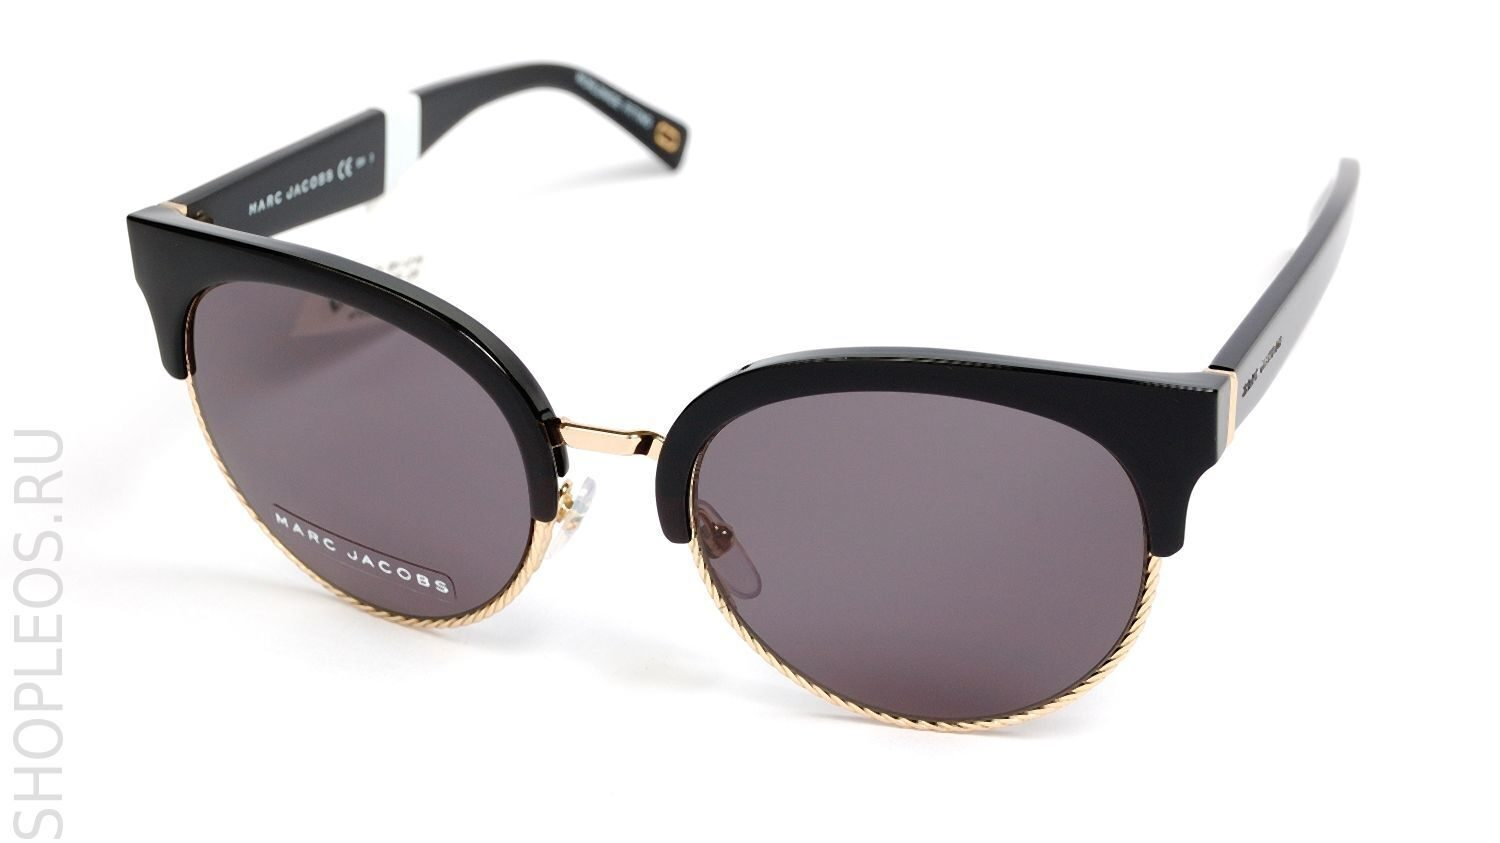 MARC JACOBS WOMAN MARC 170/S 807